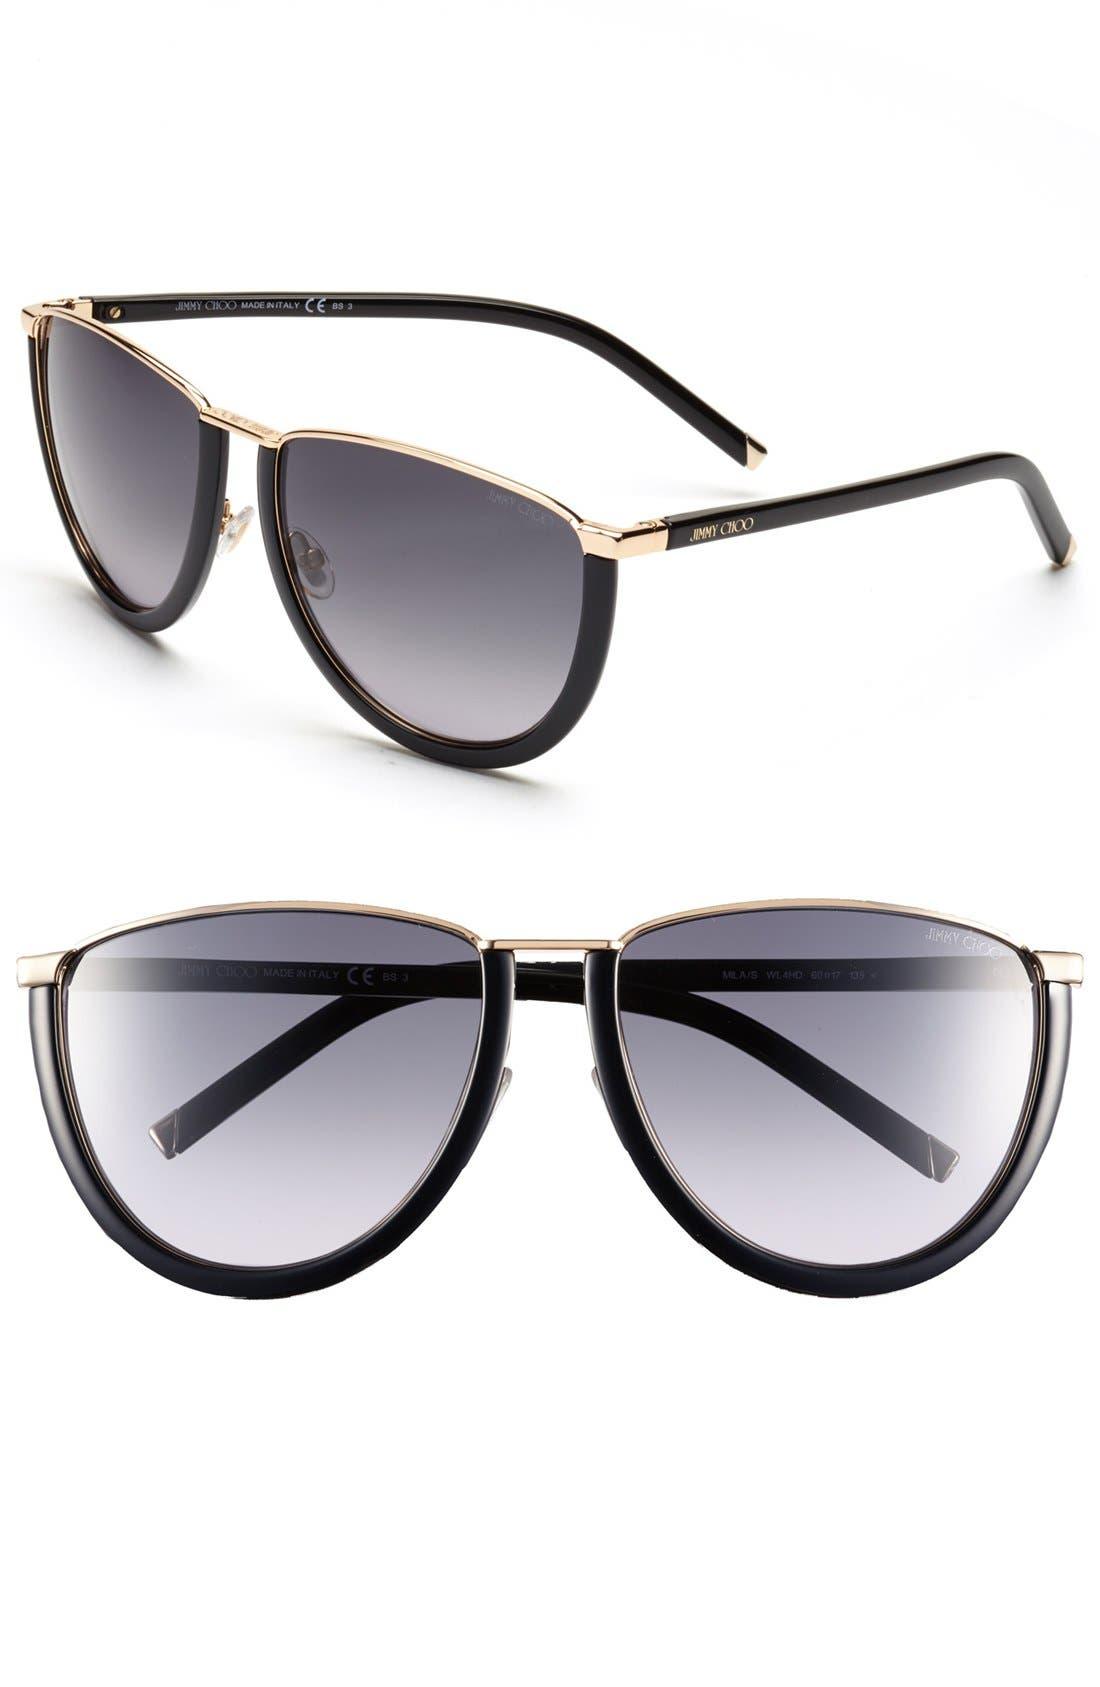 Alternate Image 1 Selected - Jimmy Choo 60mm Sunglasses